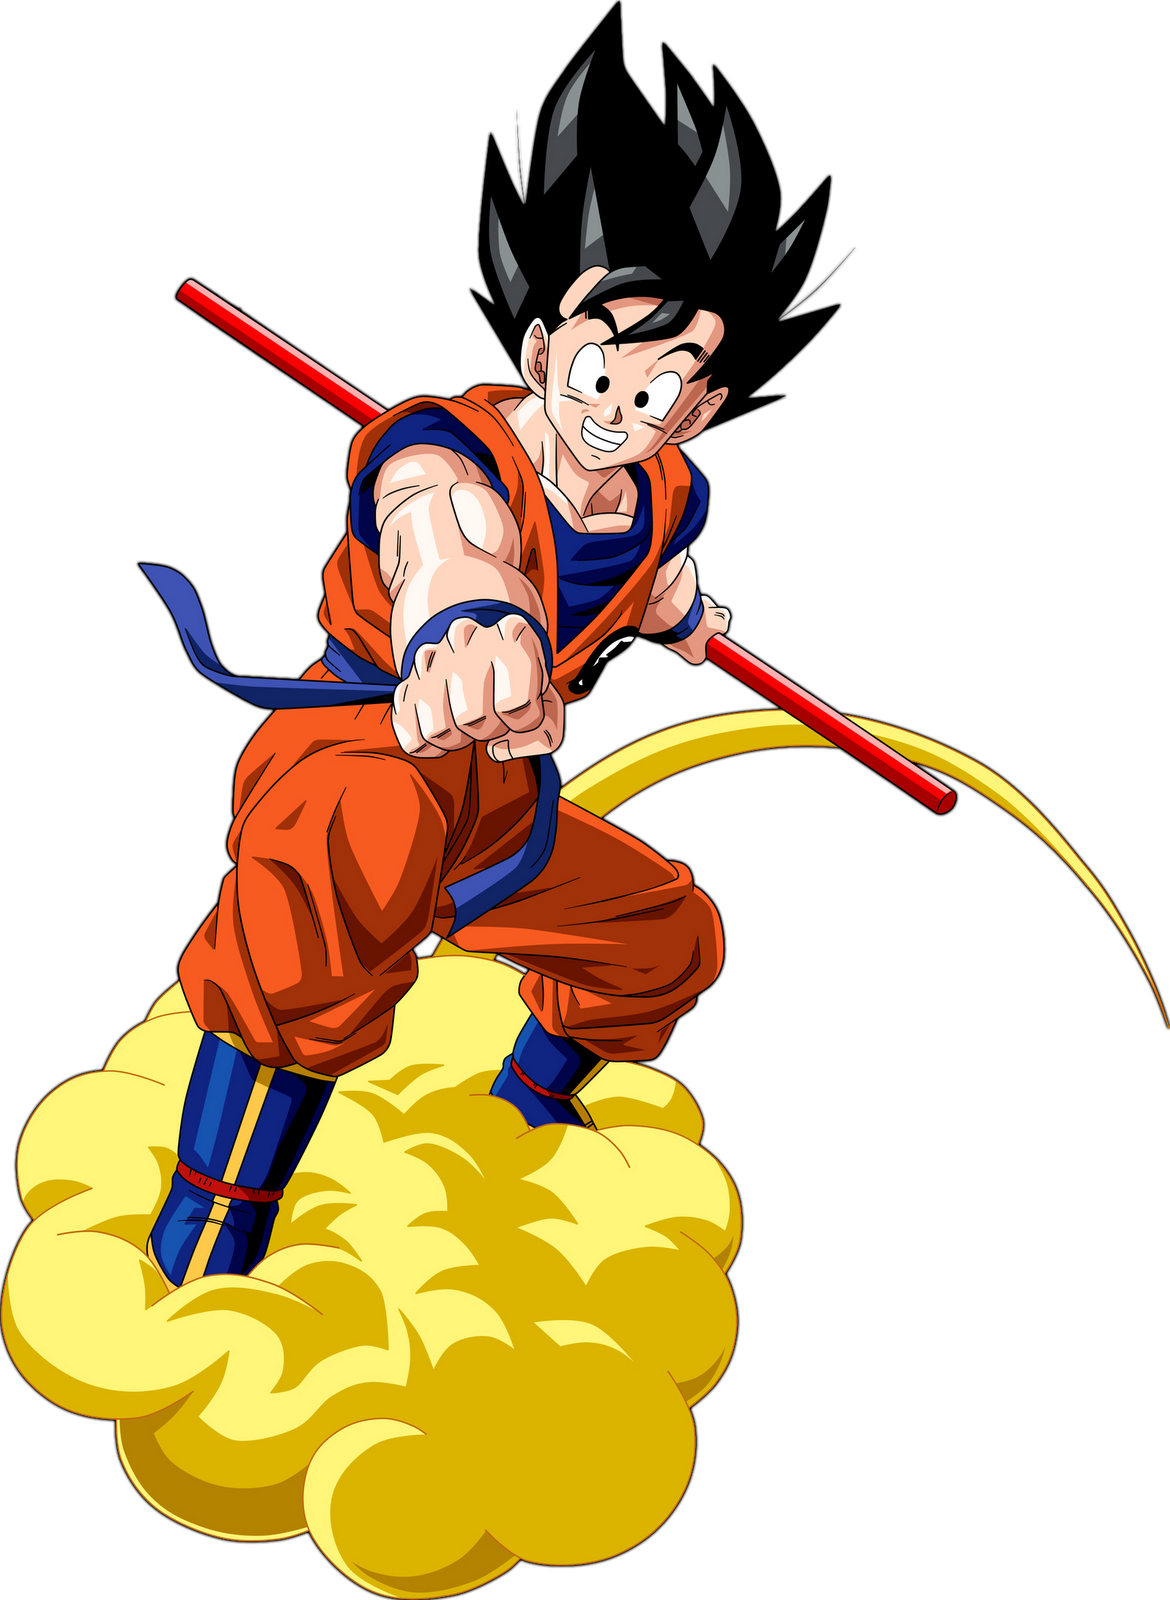 dragon ball z png